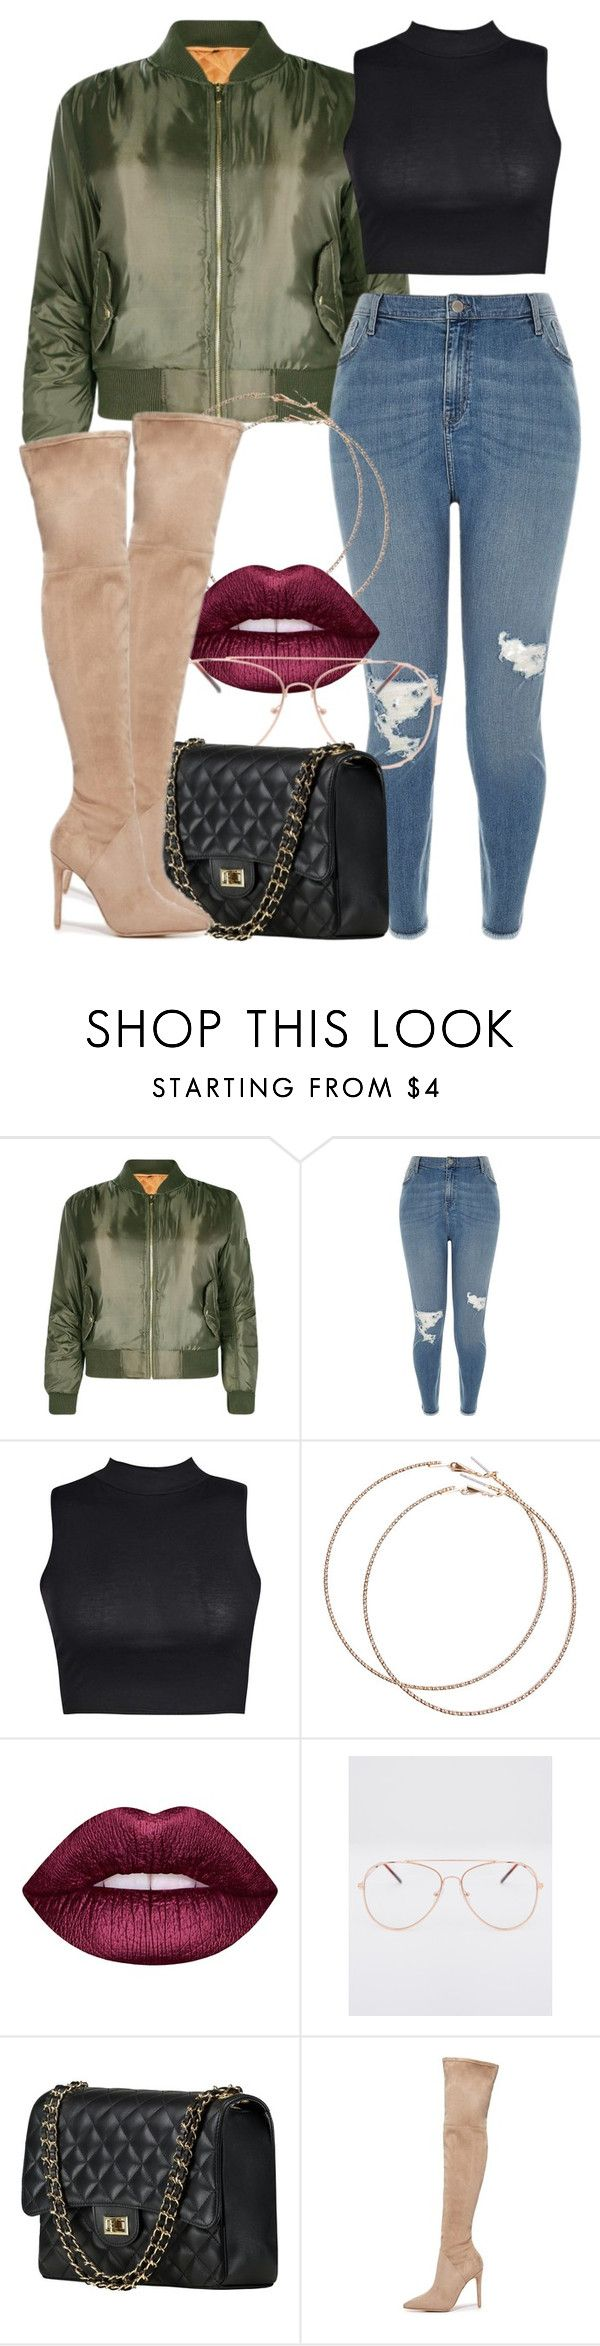 """""""2 6 17 Plus Size"""" by miizz-starburst on Polyvore featuring Boohoo, River Island, Wet Seal, Lime Crime and Kendall + Kylie"""